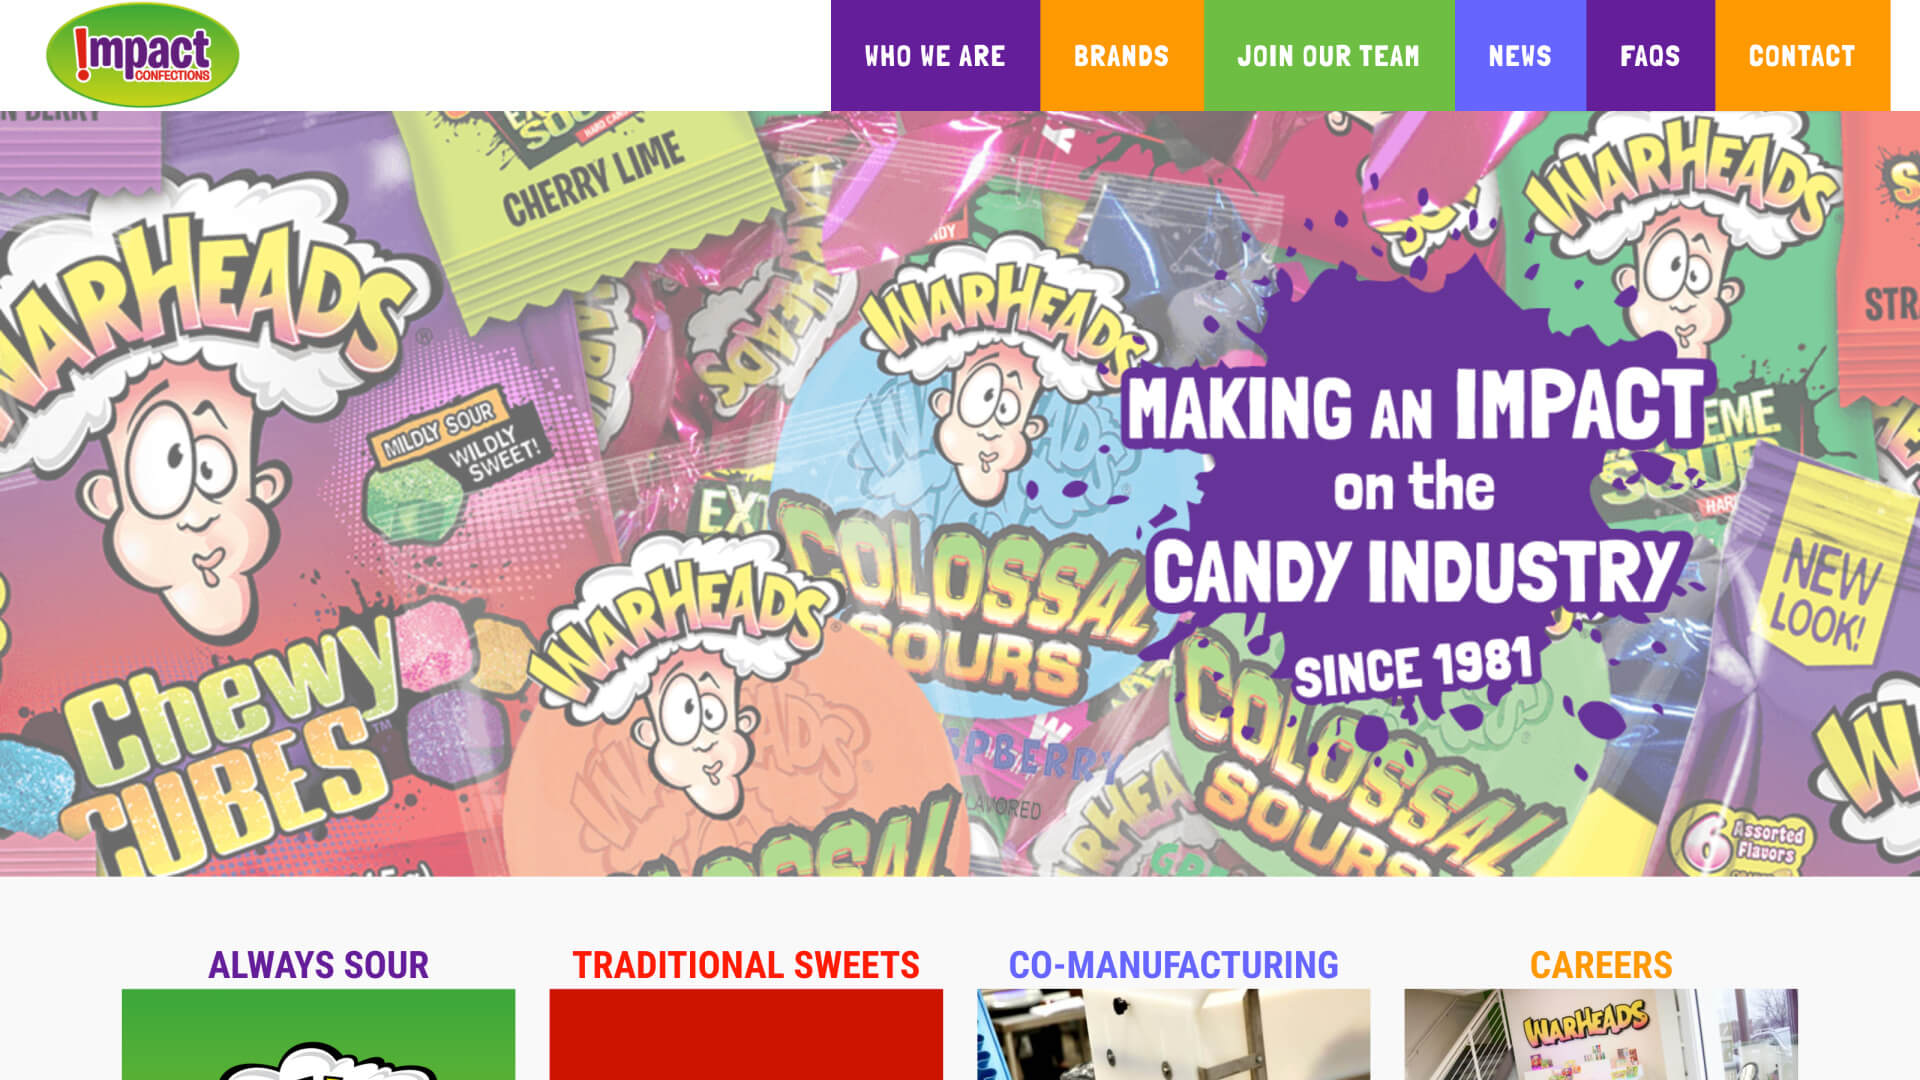 Screenshot of Impact Confections homepage from March 27, 2020